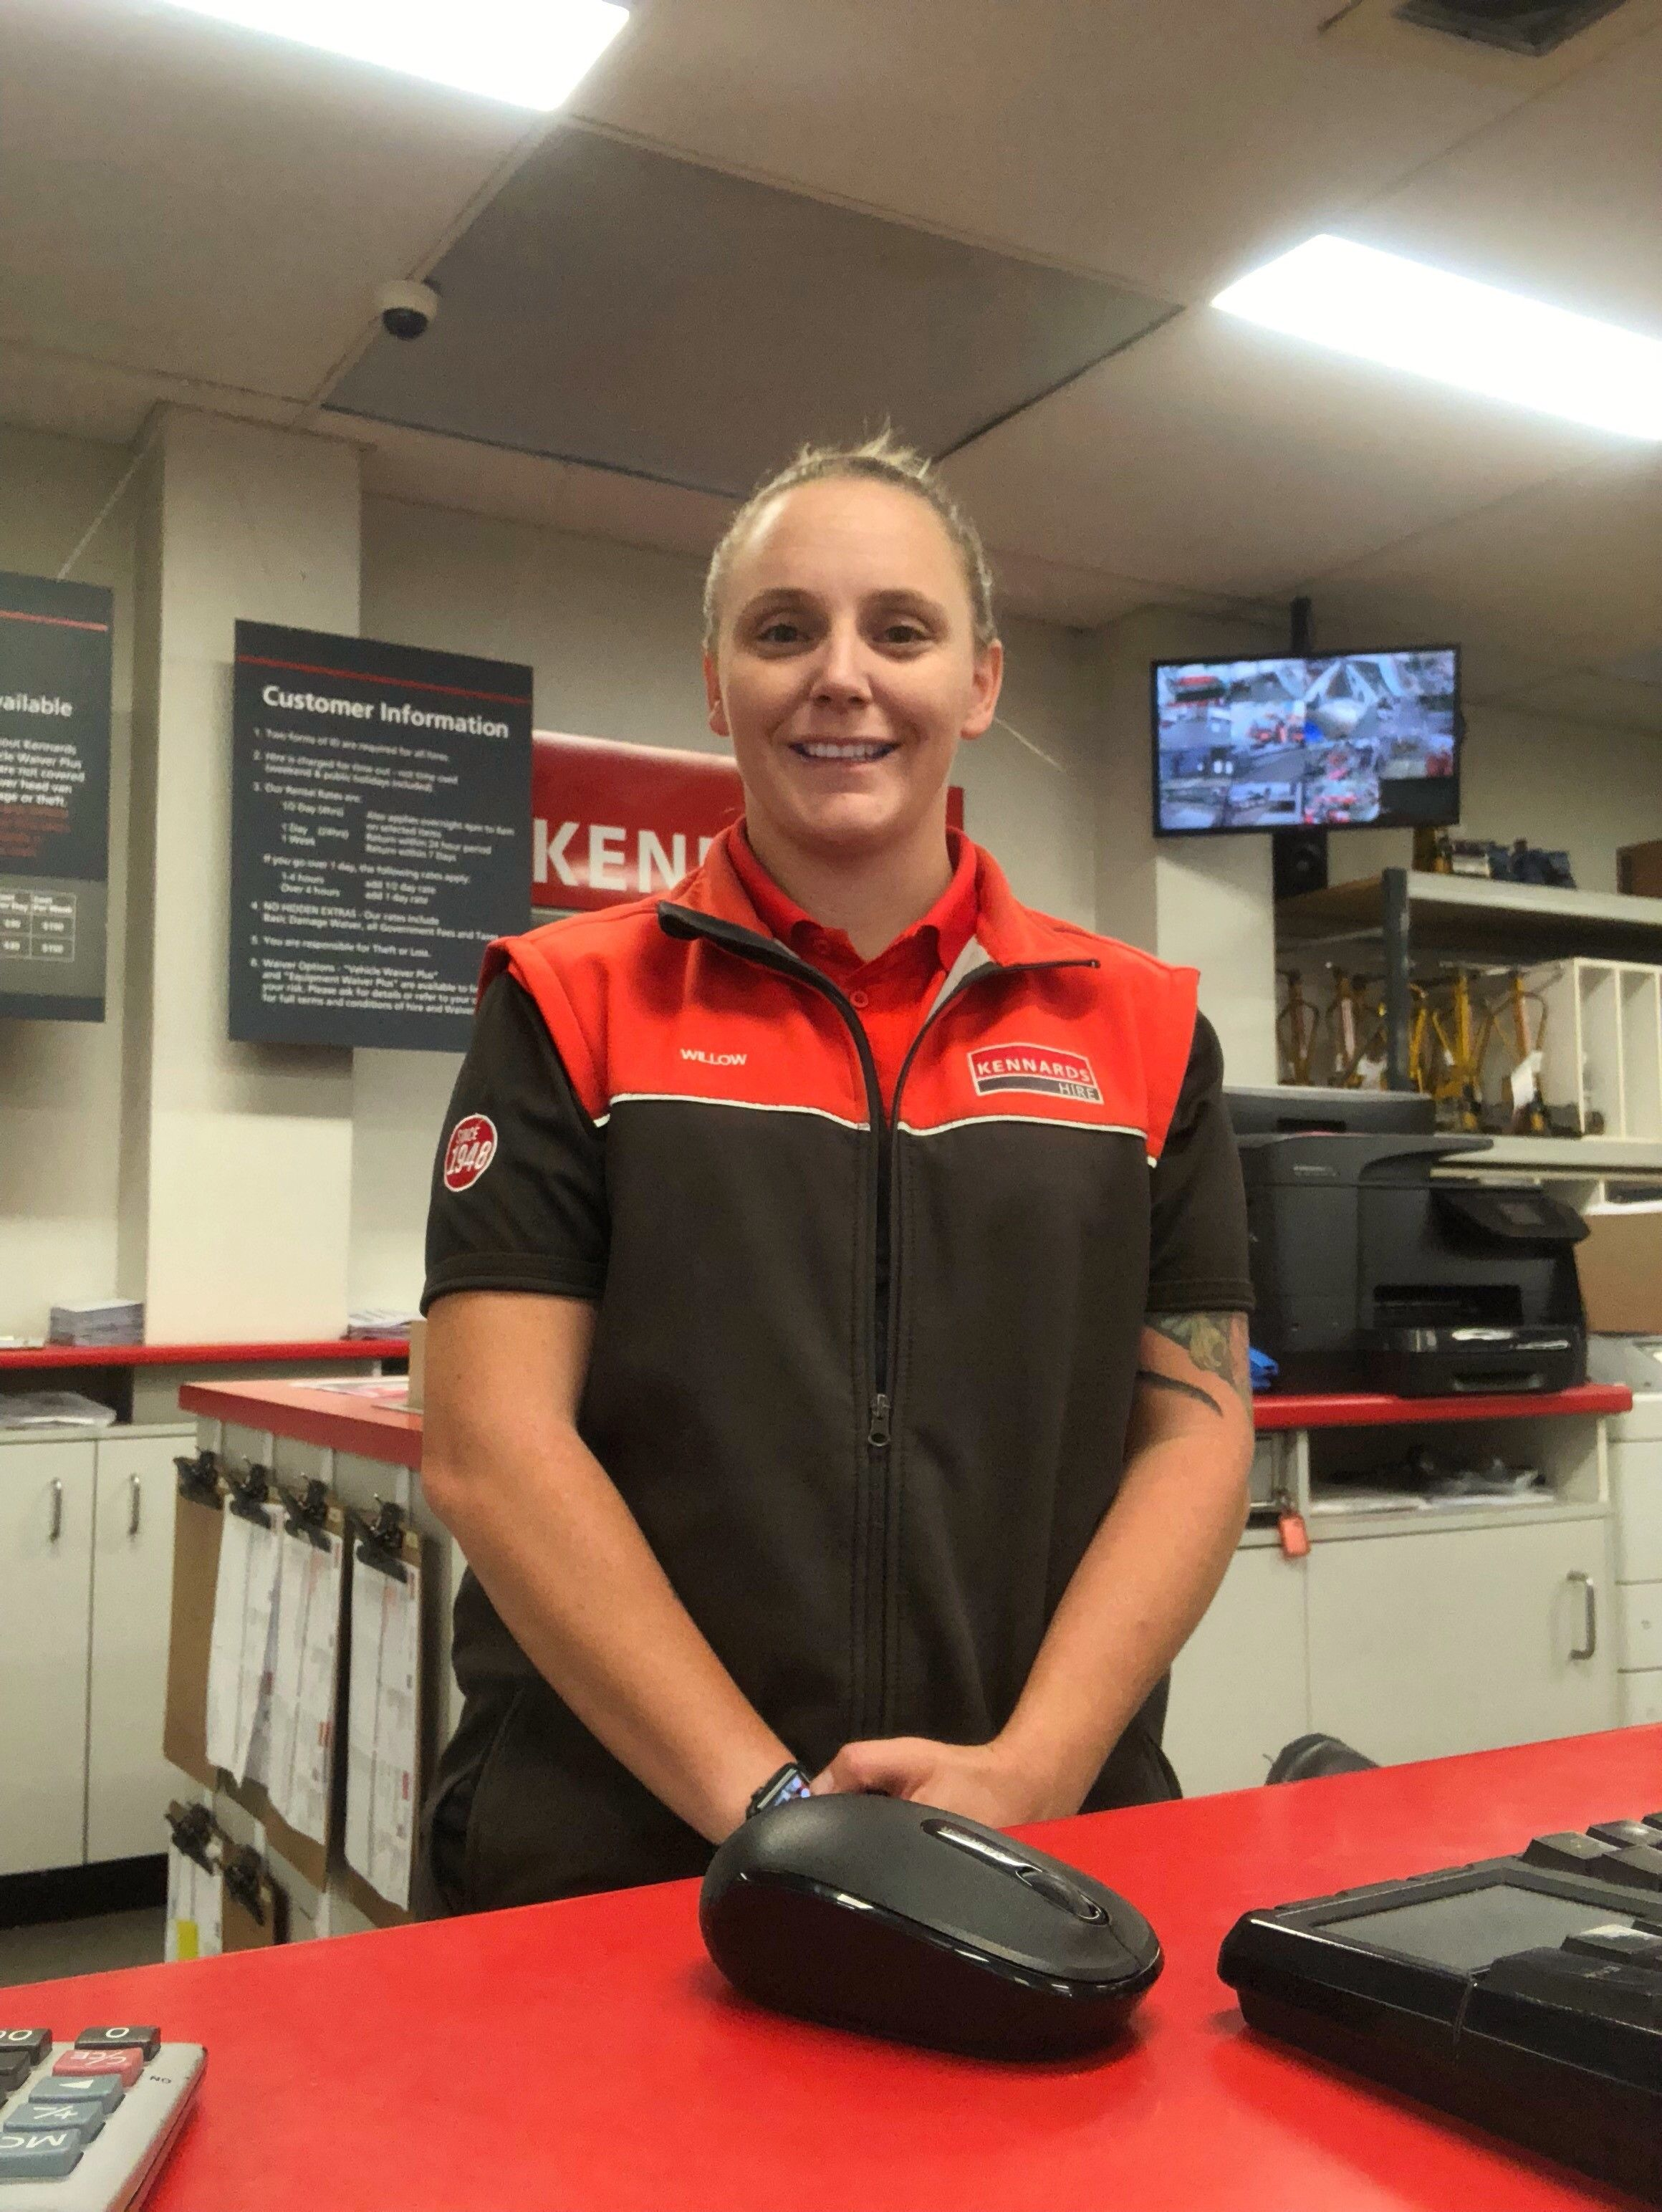 Willow Shorrocks, one of the many women who work at Kennards Hire